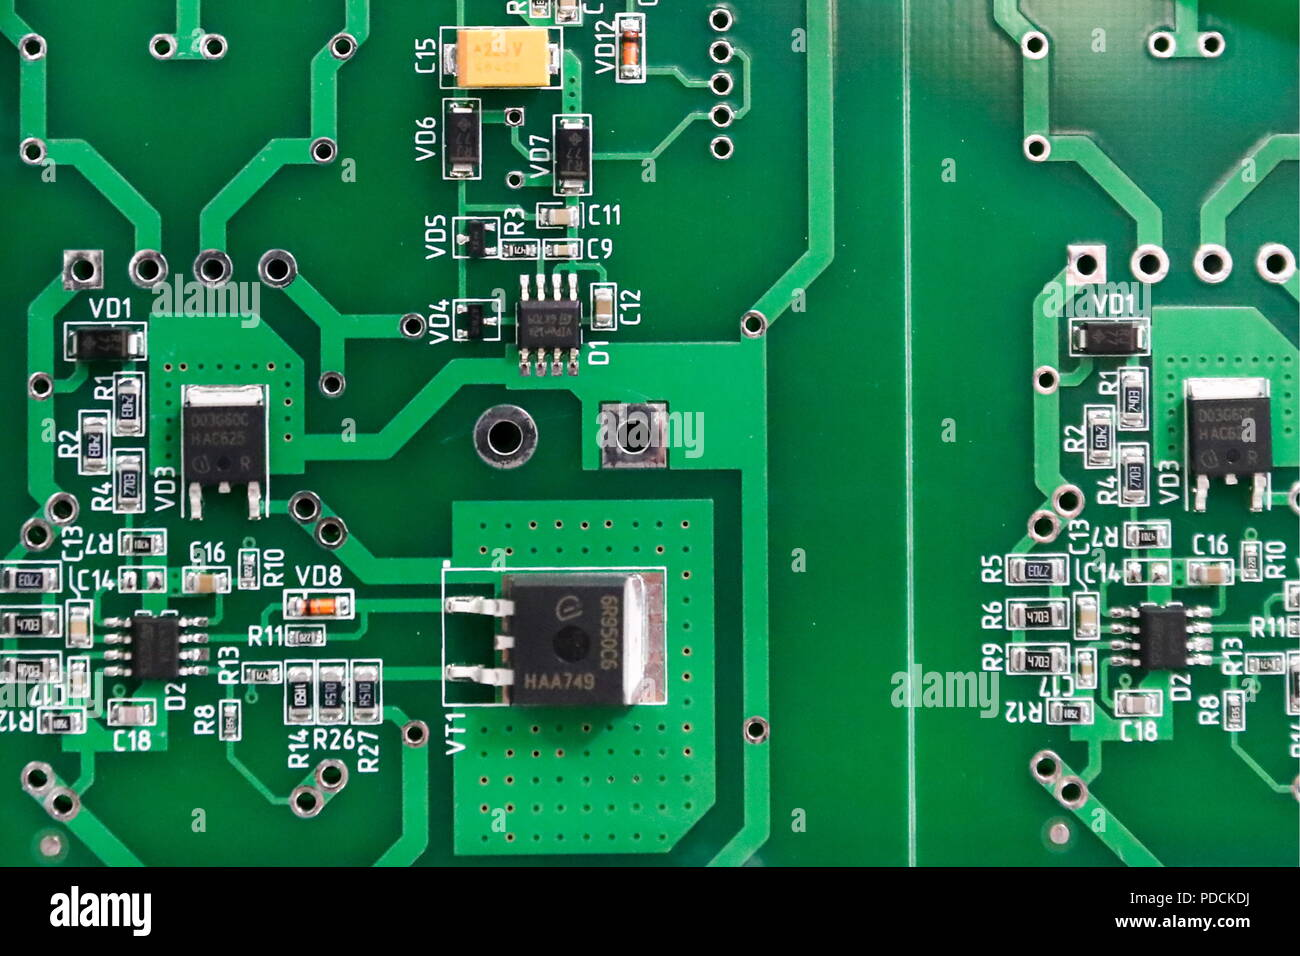 Russian Moscow Electronic Stock Photos Making Printed Circuit Boards Russia August 9 2018 Pcb